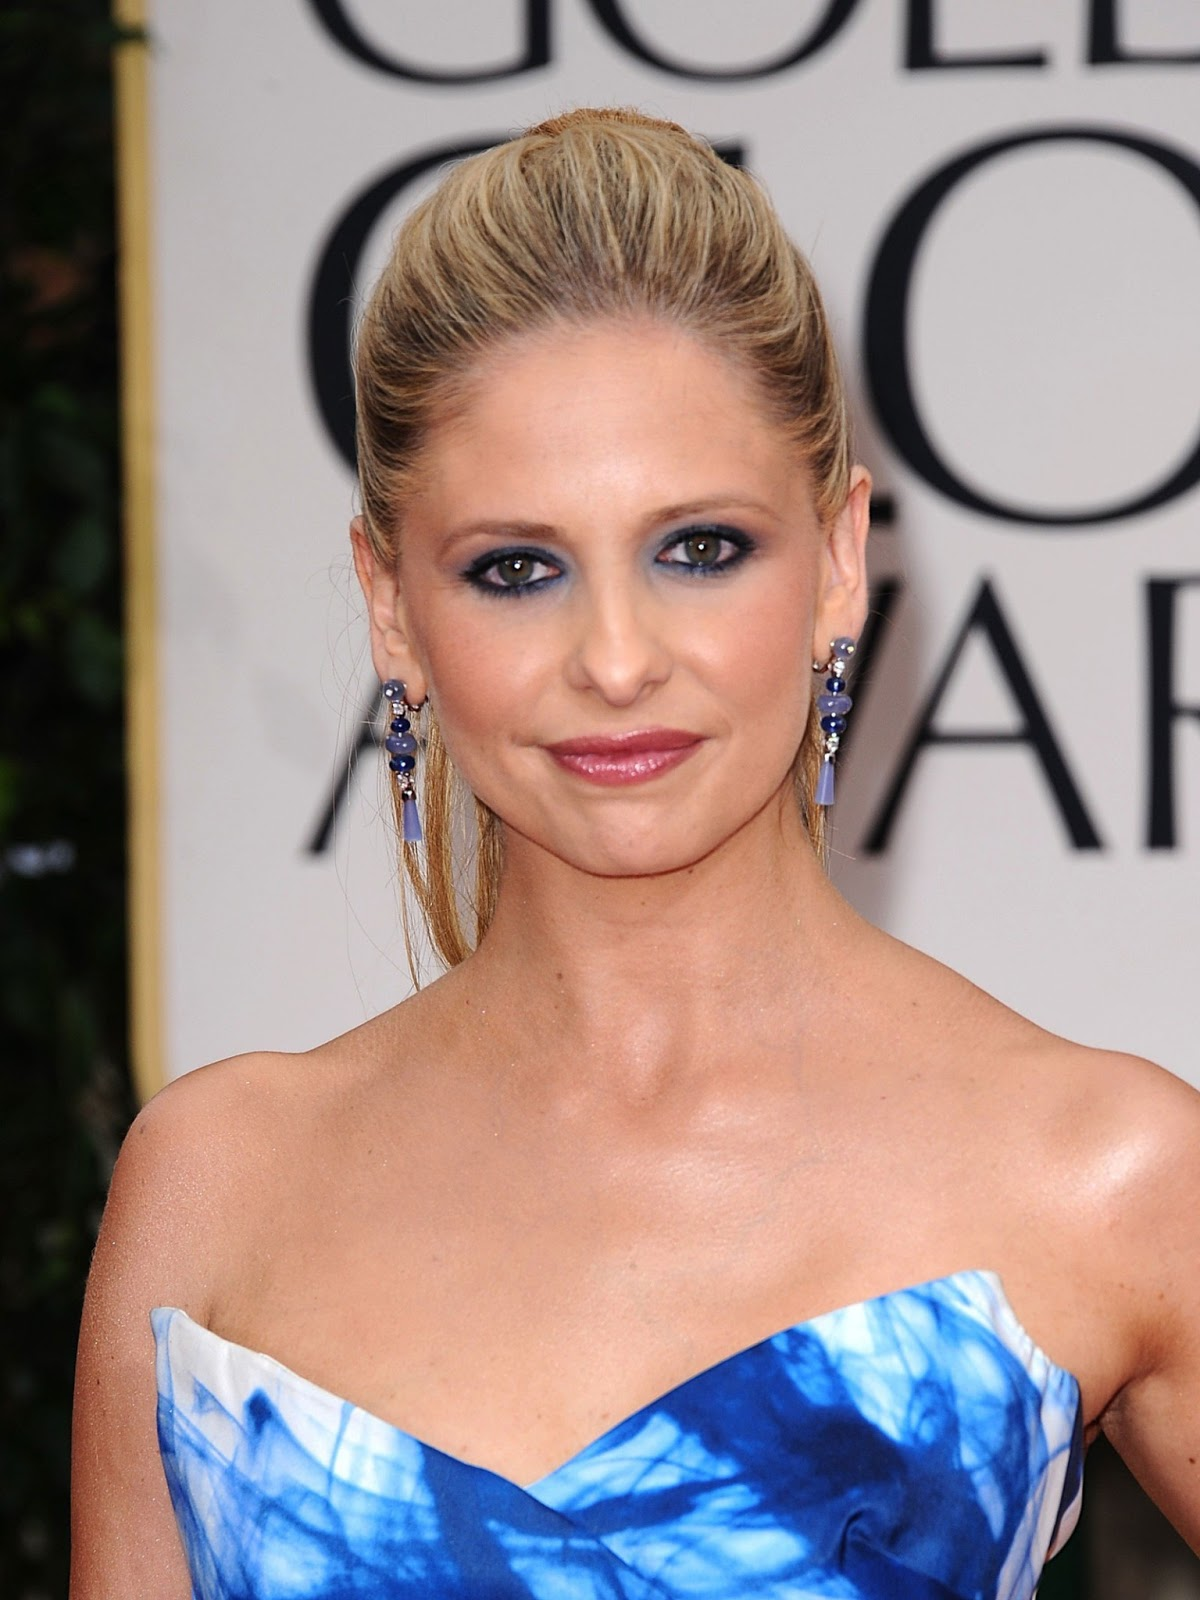 http://1.bp.blogspot.com/-25VBhoDWt1k/UOmUo8fTXcI/AAAAAAAASjM/d54jA_XpcYI/s1600/Sarah-Michelle-Gellar-at-69th-Annual-Golden-Globe-Awards-in-Los-Angeles-151.jpg